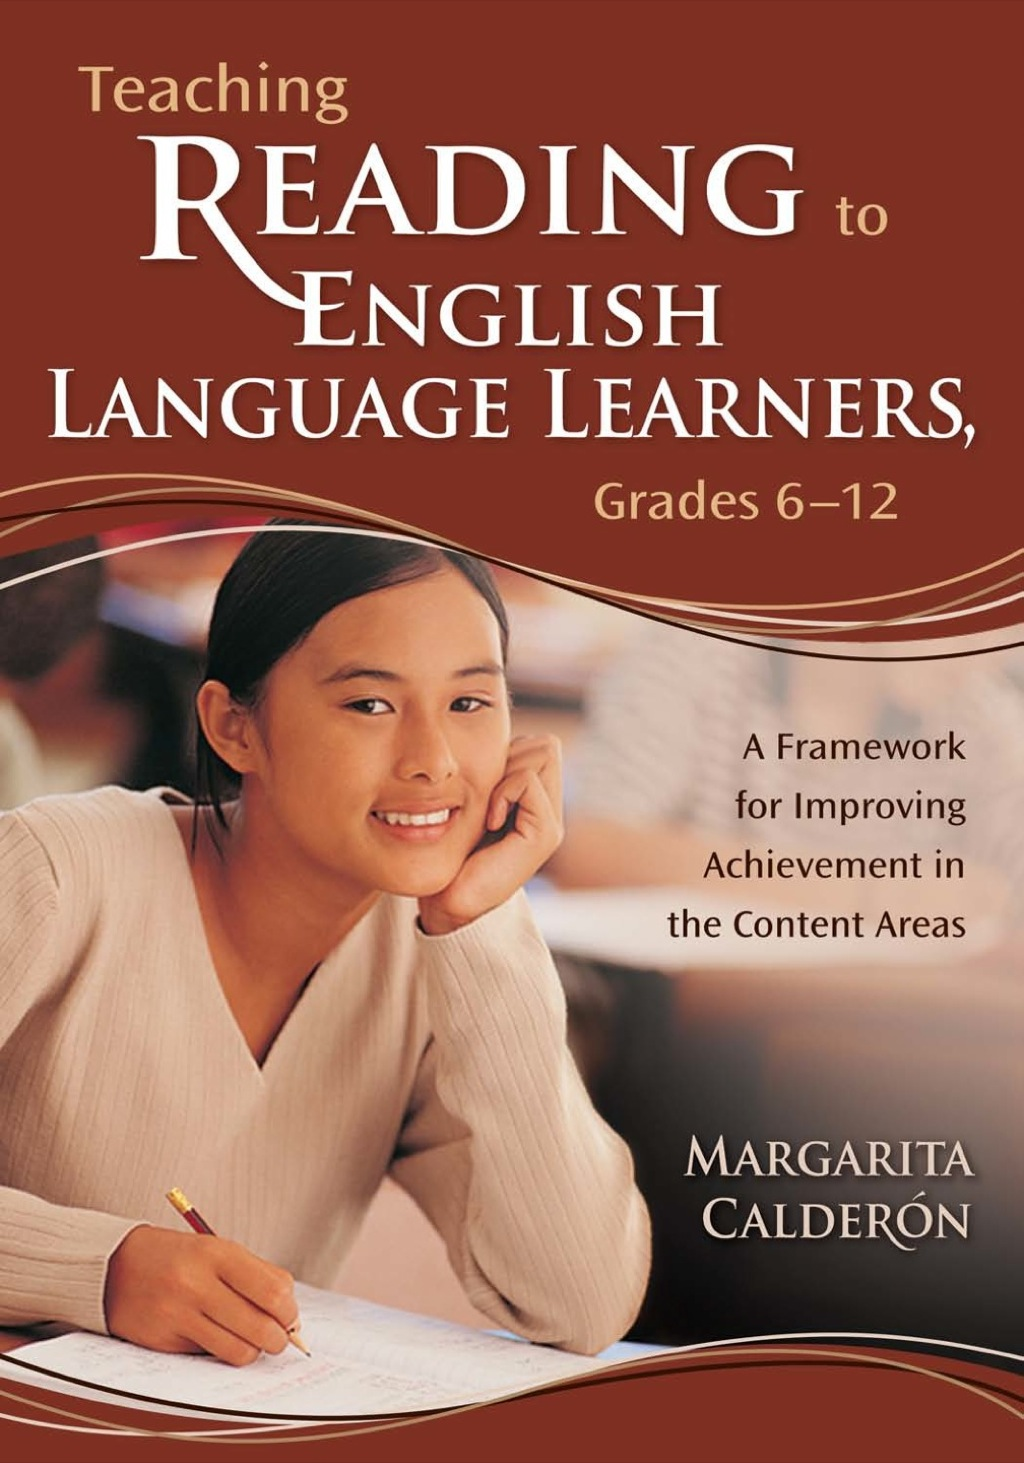 Teaching Reading to English Language Learners, Grades 6-12: A Framework for Improving Achievement in the Content Areas (ebook) eBooks